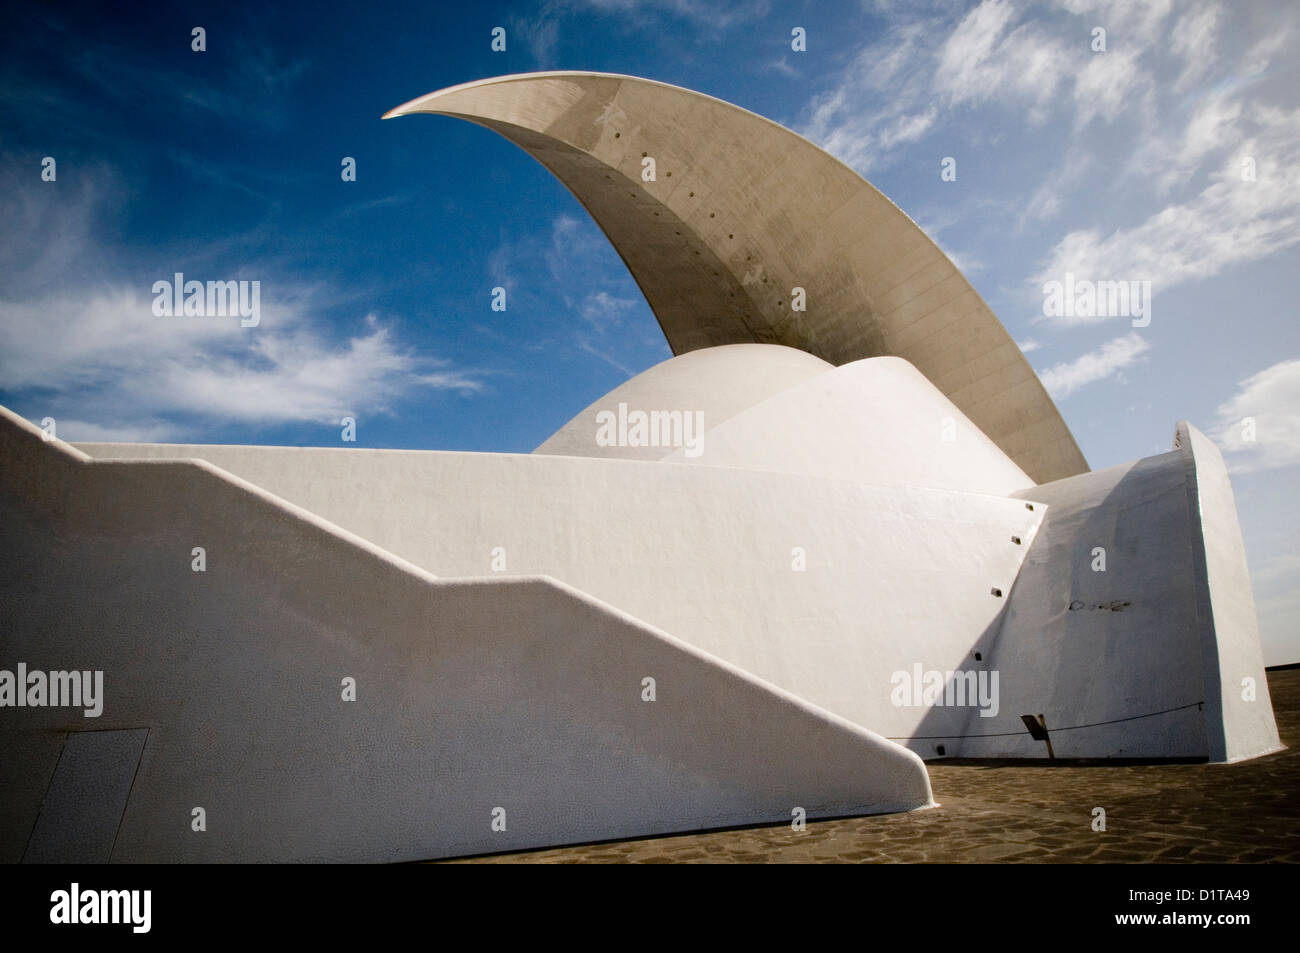 Auditorio de Tenerife Adán Martín opera house dramatic architecture architectural photography stunning - Stock Image